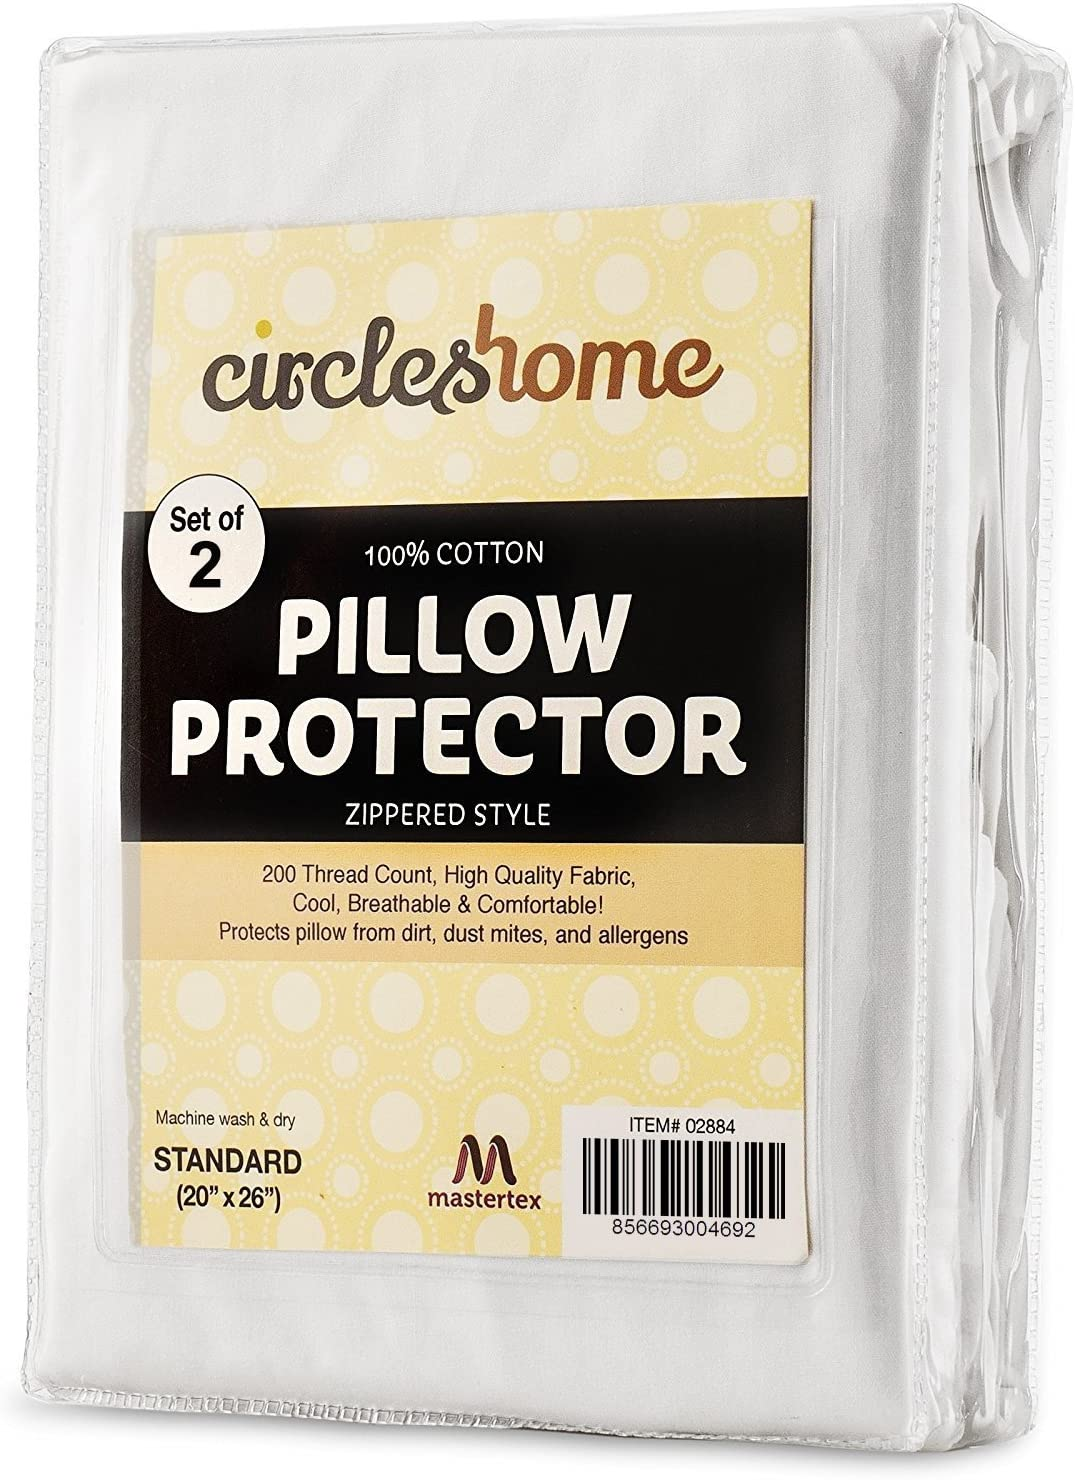 CIRCLESHOME Standard Pillow Protectors 2 Pack   100% Cotton Breathable Pillow Covers   Protects from Dirt, Dust & Allergens   Hypoallergenic & Quiet (Standard - Set of 2-20x26): Home & Kitchen